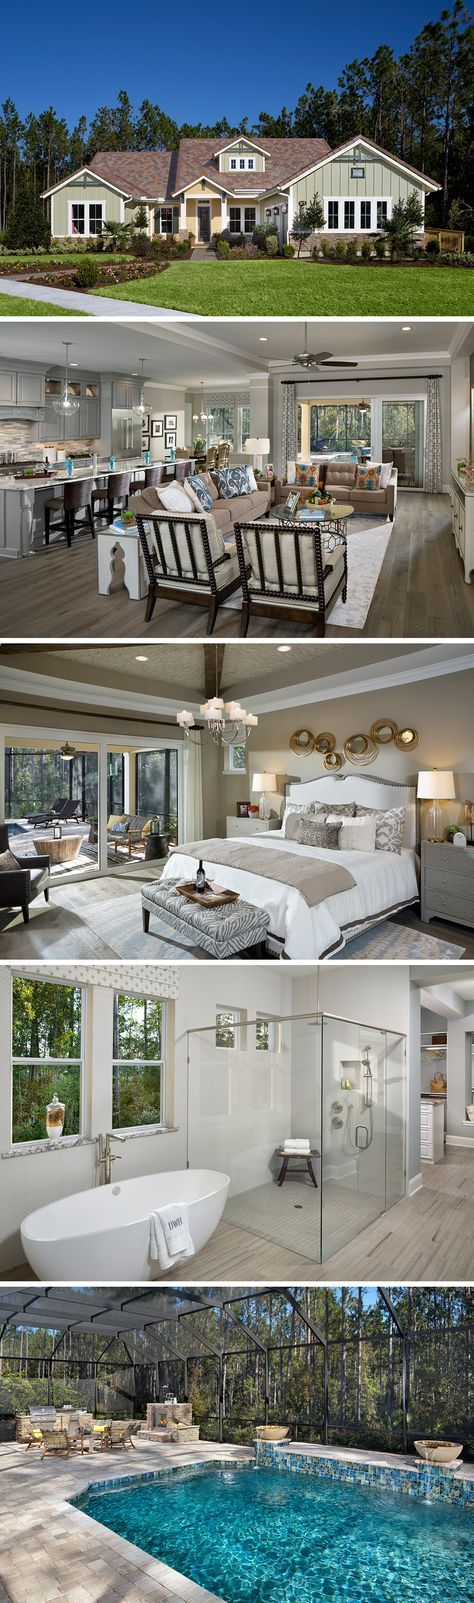 David Weekley Homes is now building in Nocatee's newest community, The Ranch at Twenty Mile. Located in Ponte Vedra, FL in the historic St. Johns County, this community offers luxuries such as a centralized amenity center, dog park, and convenient access to both Nocatee Parkway and Dixie Highway. The Waters is one of many floor plans offered here featuring plenty of customizable options to fit your needs. Check out our website for more information on this home and community.